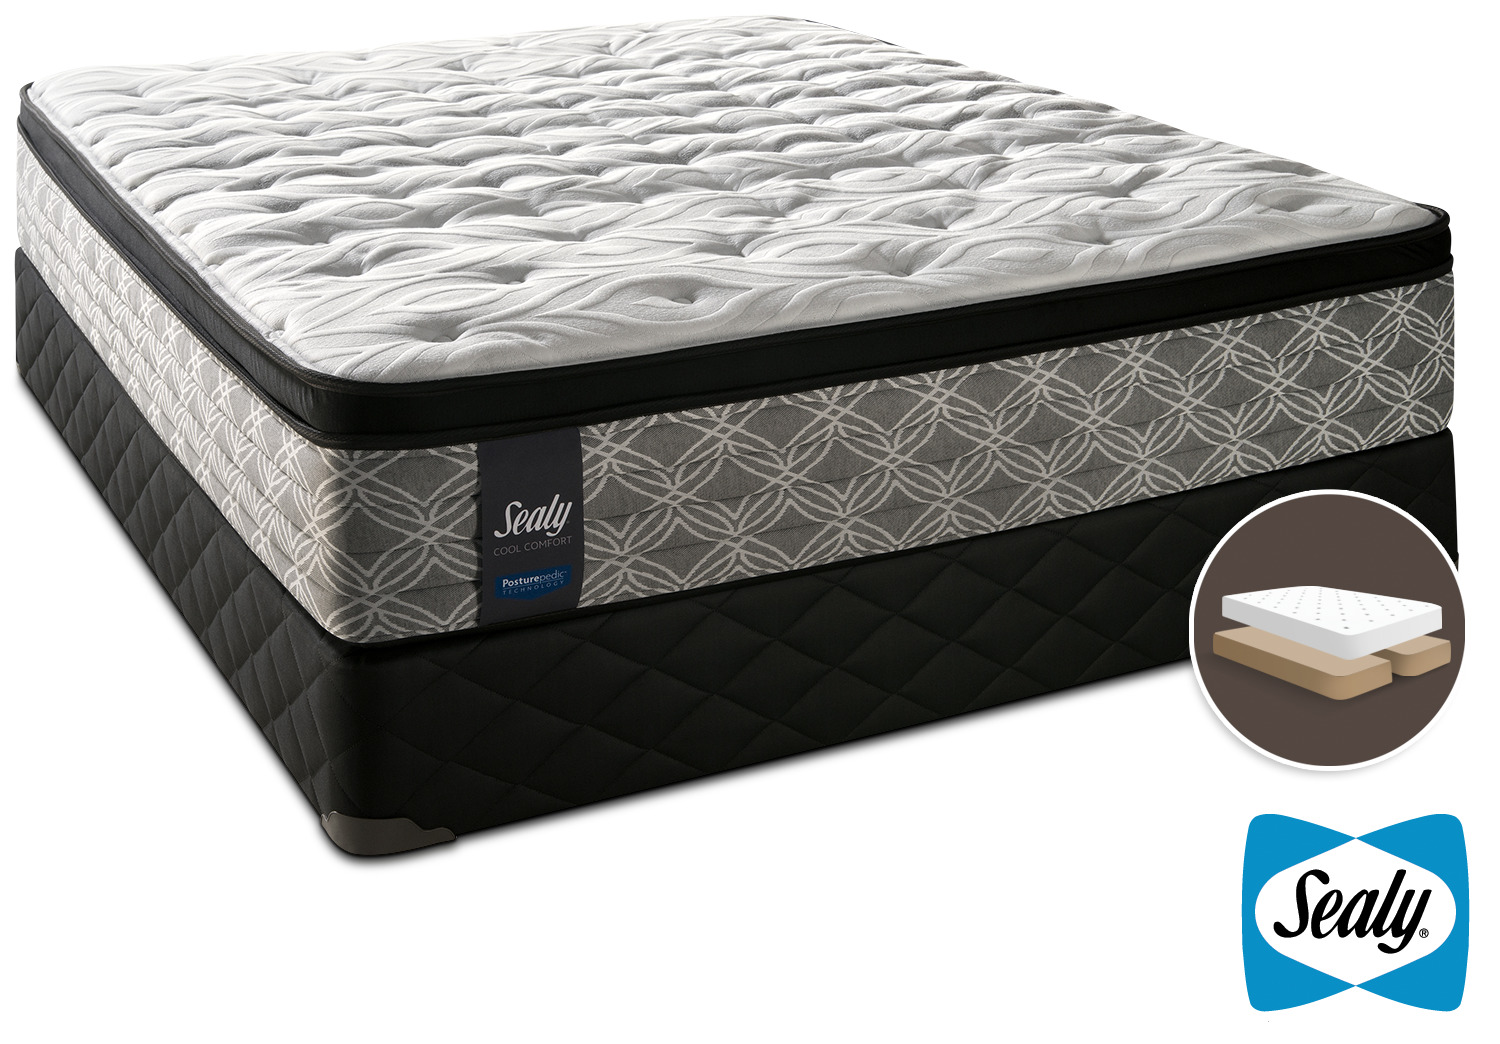 Sealy Super Nova Cushion Firm King Mattress and Split Boxspring Set